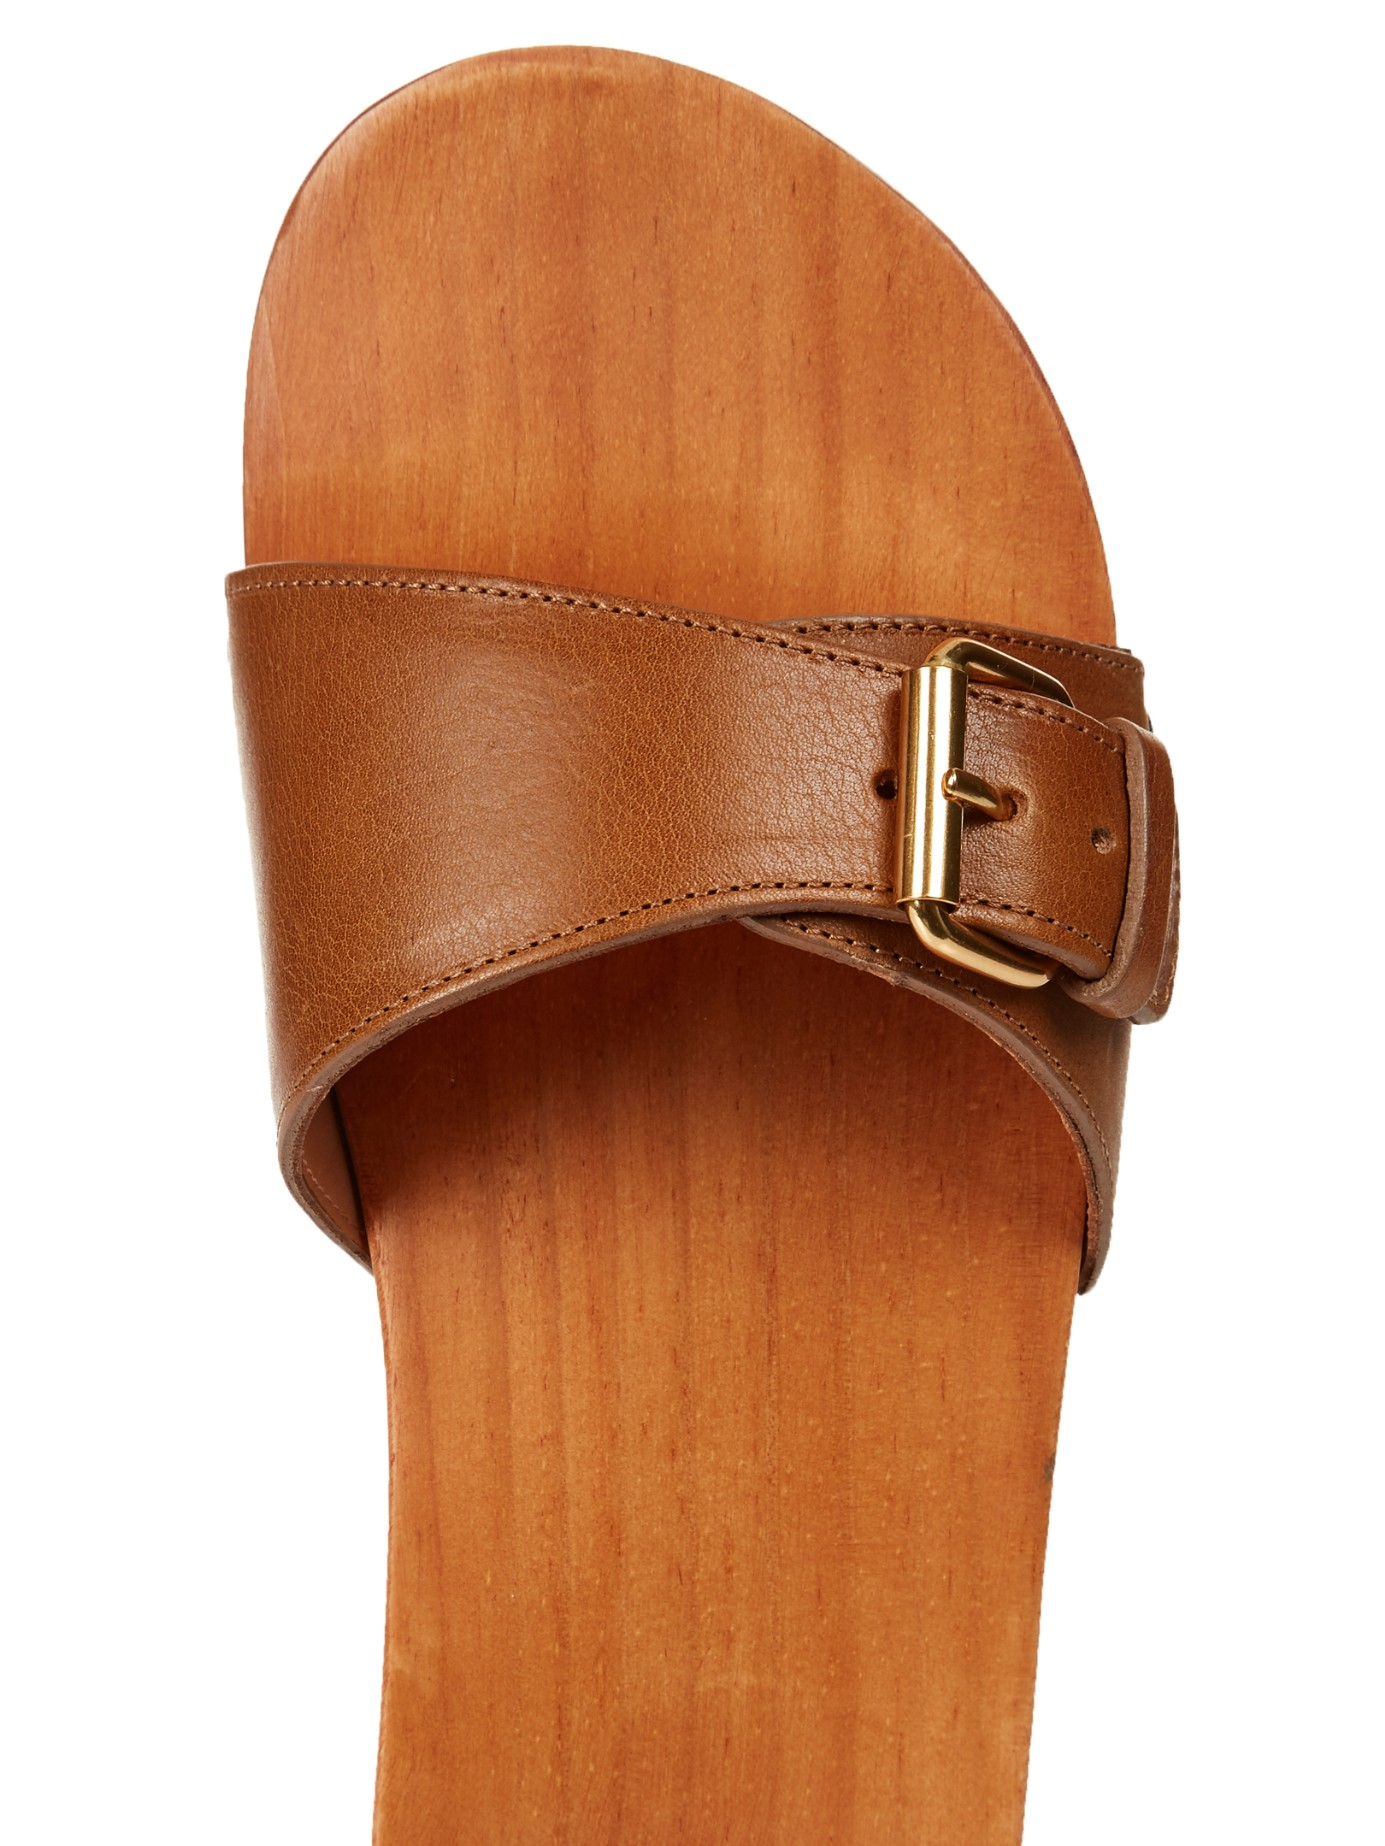 Isabel Marant 201 Toile Tadley Wooden Sandals In Brown Lyst